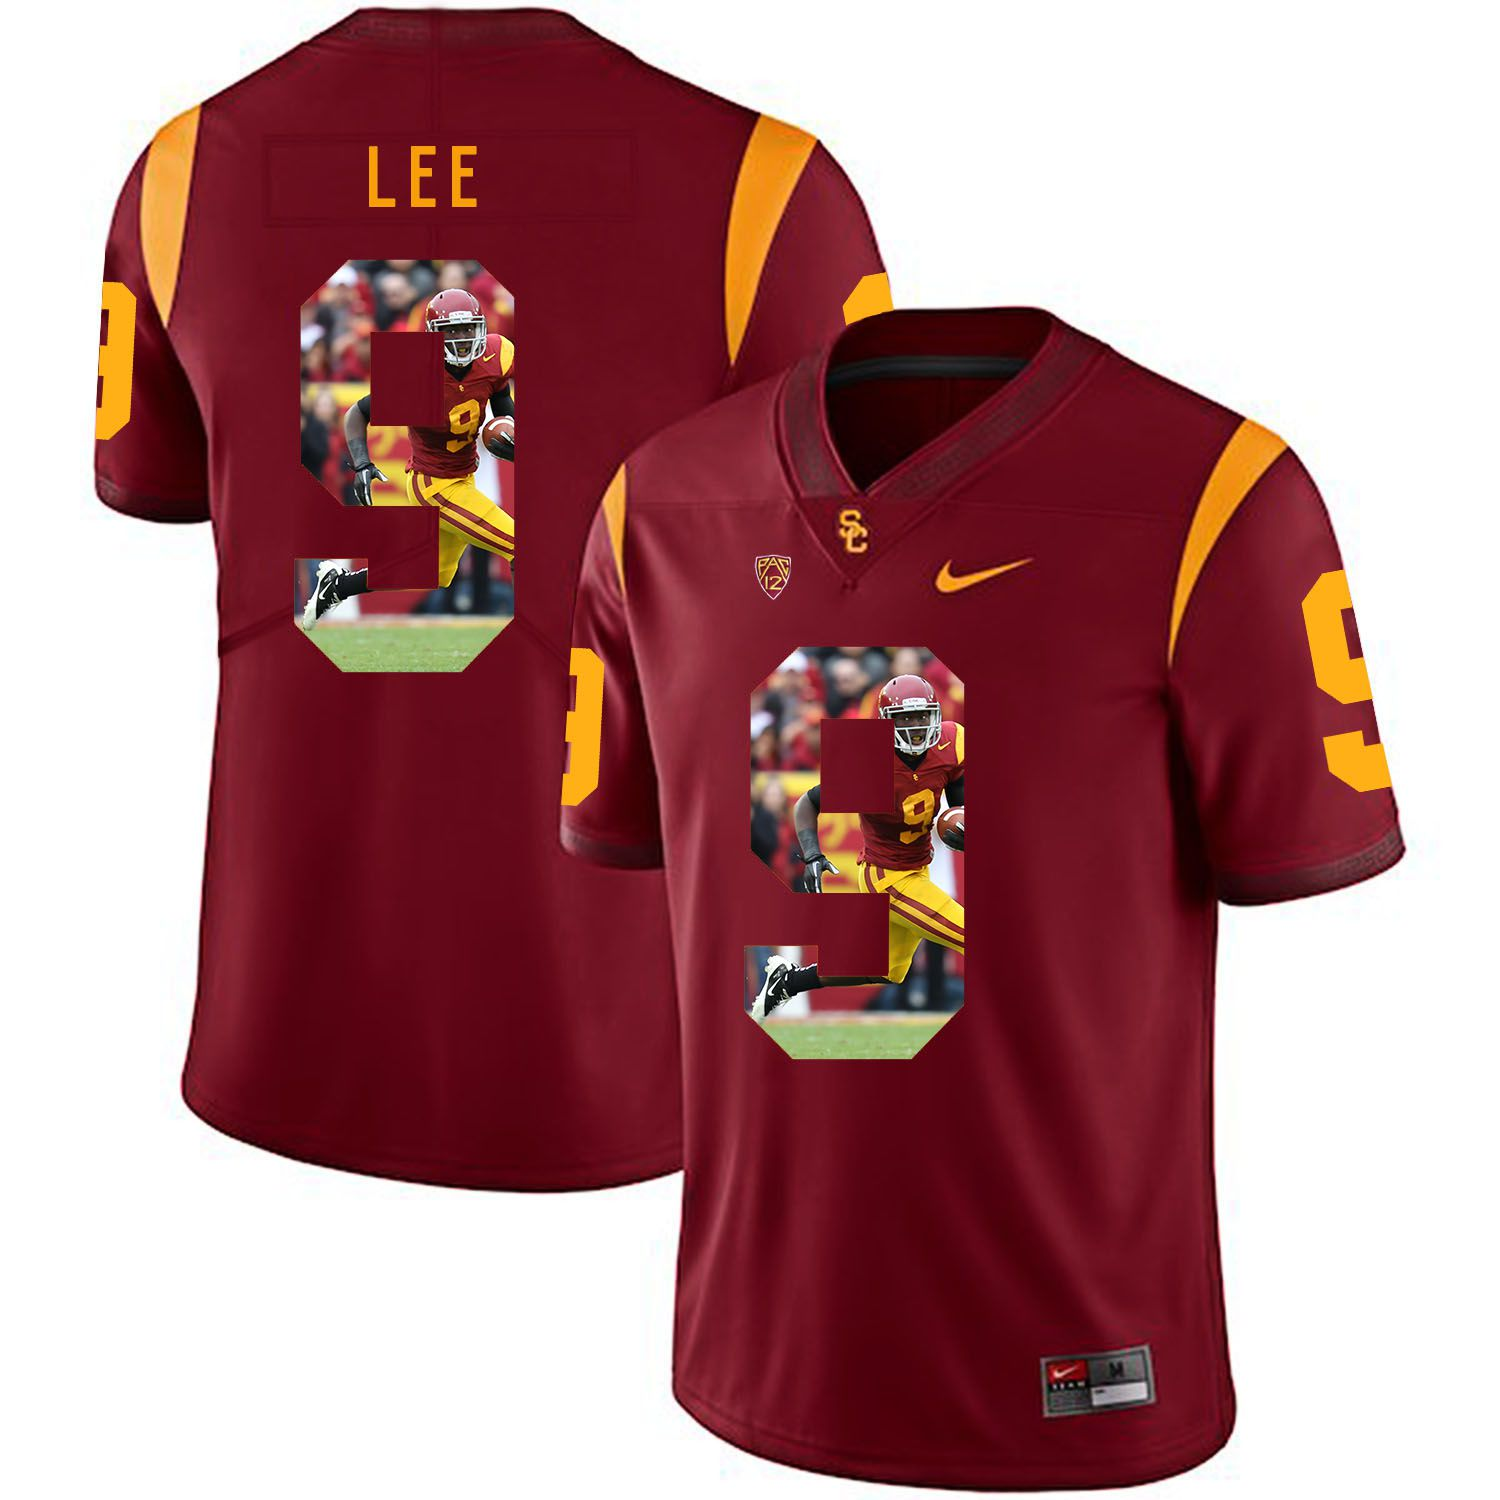 Men USC Trojans 9 Lee Red Fashion Edition Customized NCAA Jerseys